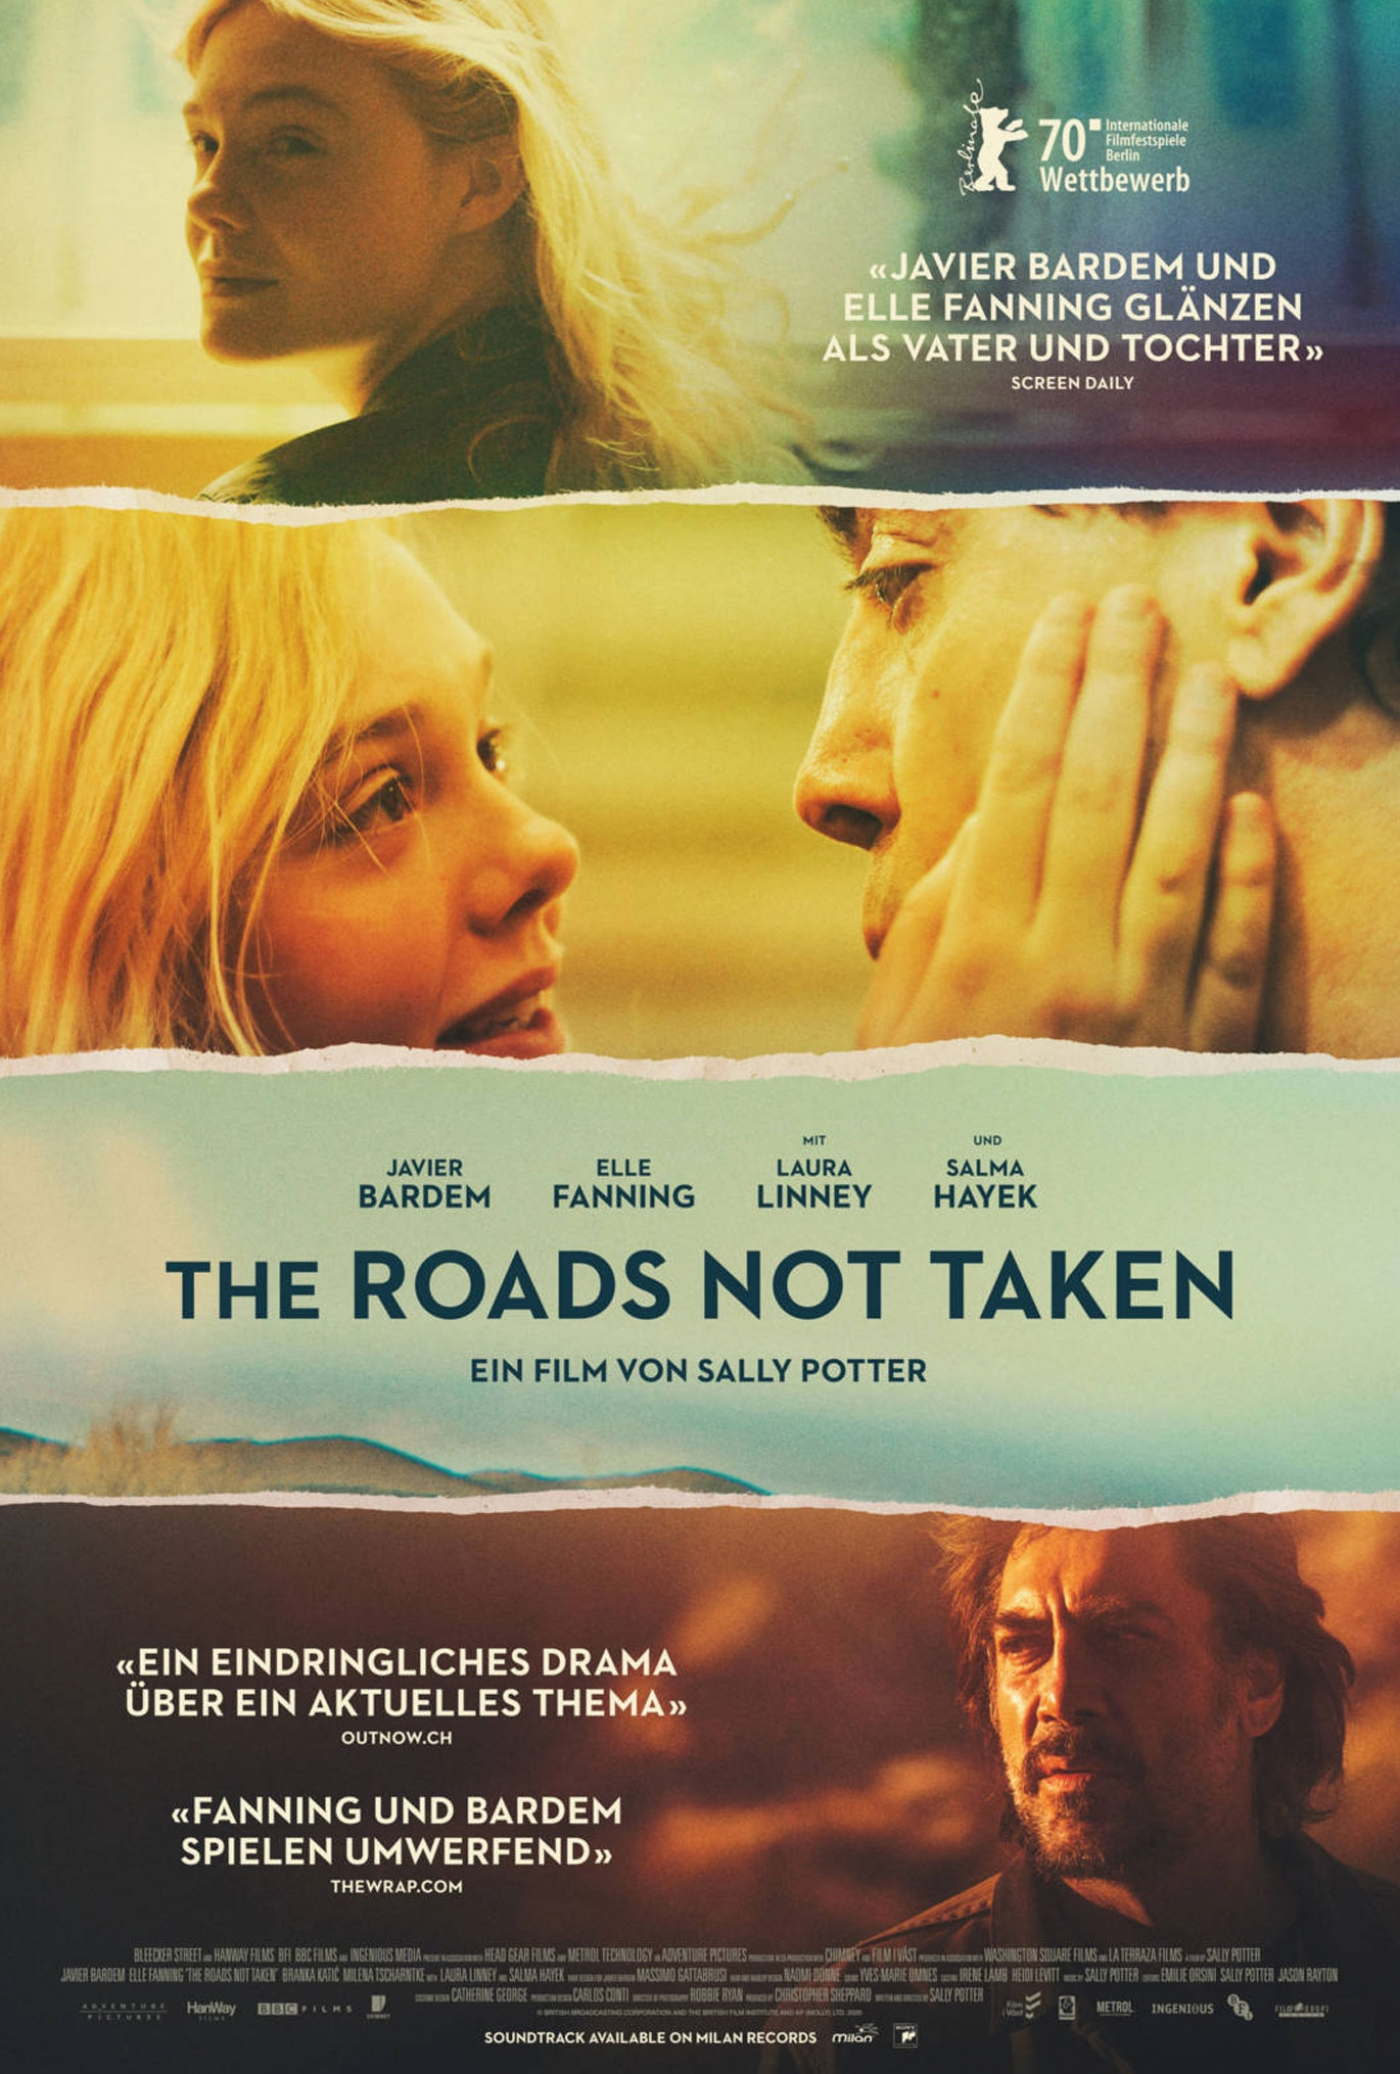 THE ROADS NOT TAKEN